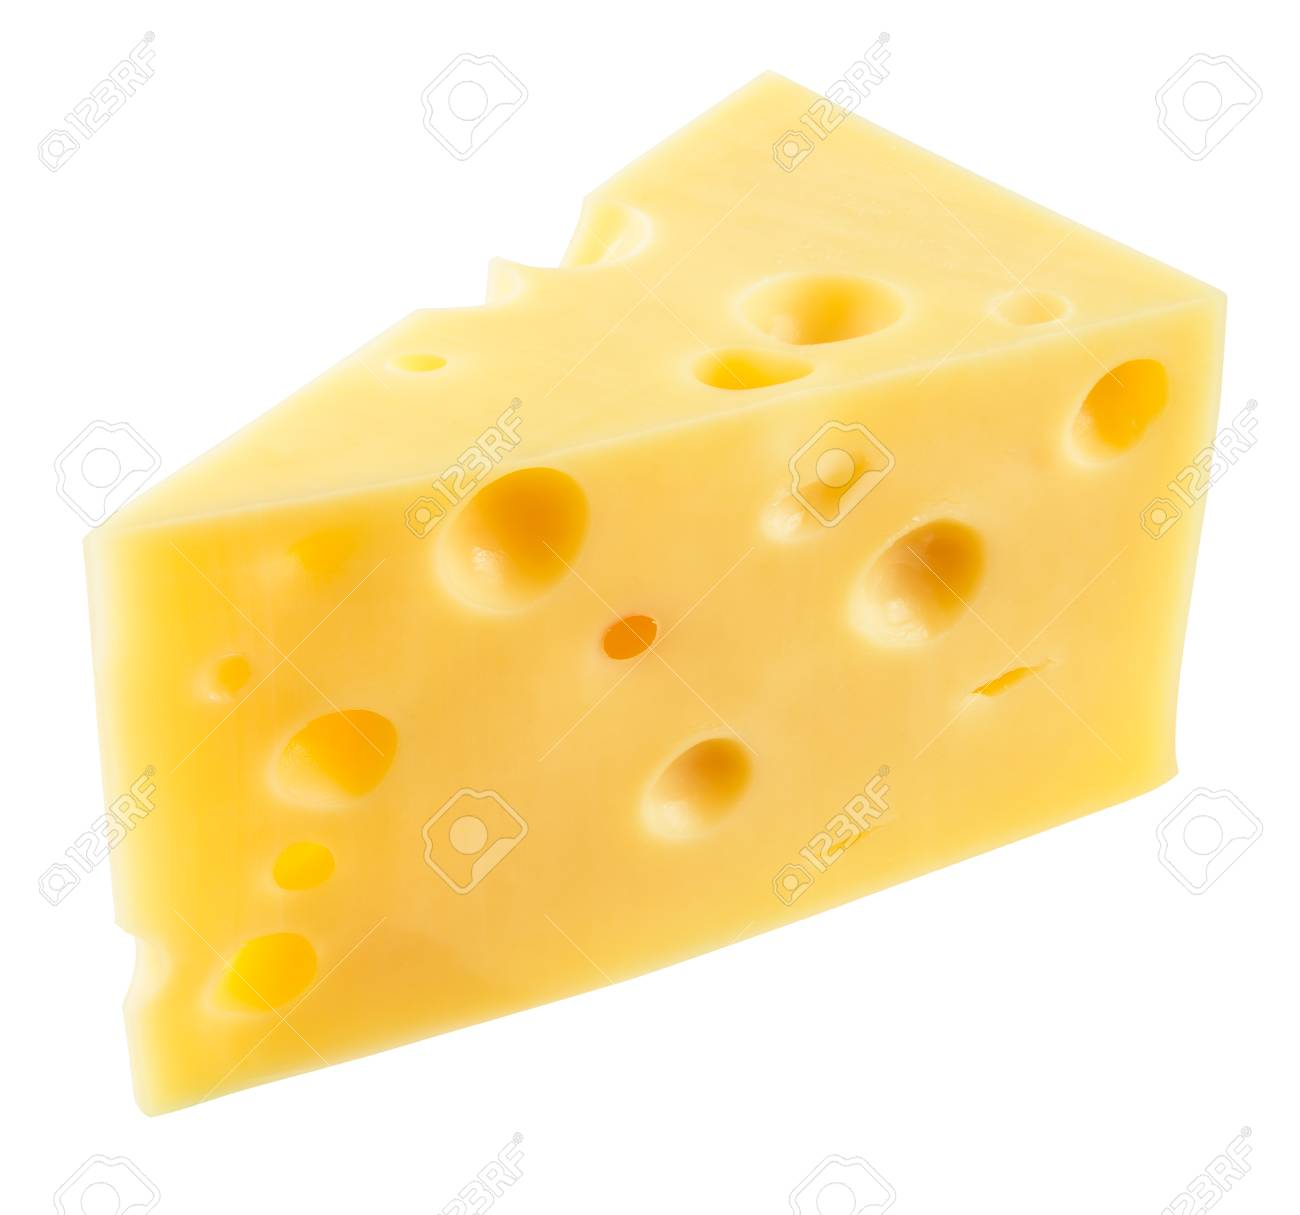 Piece of cheese isolated. With clipping path. - 70258418